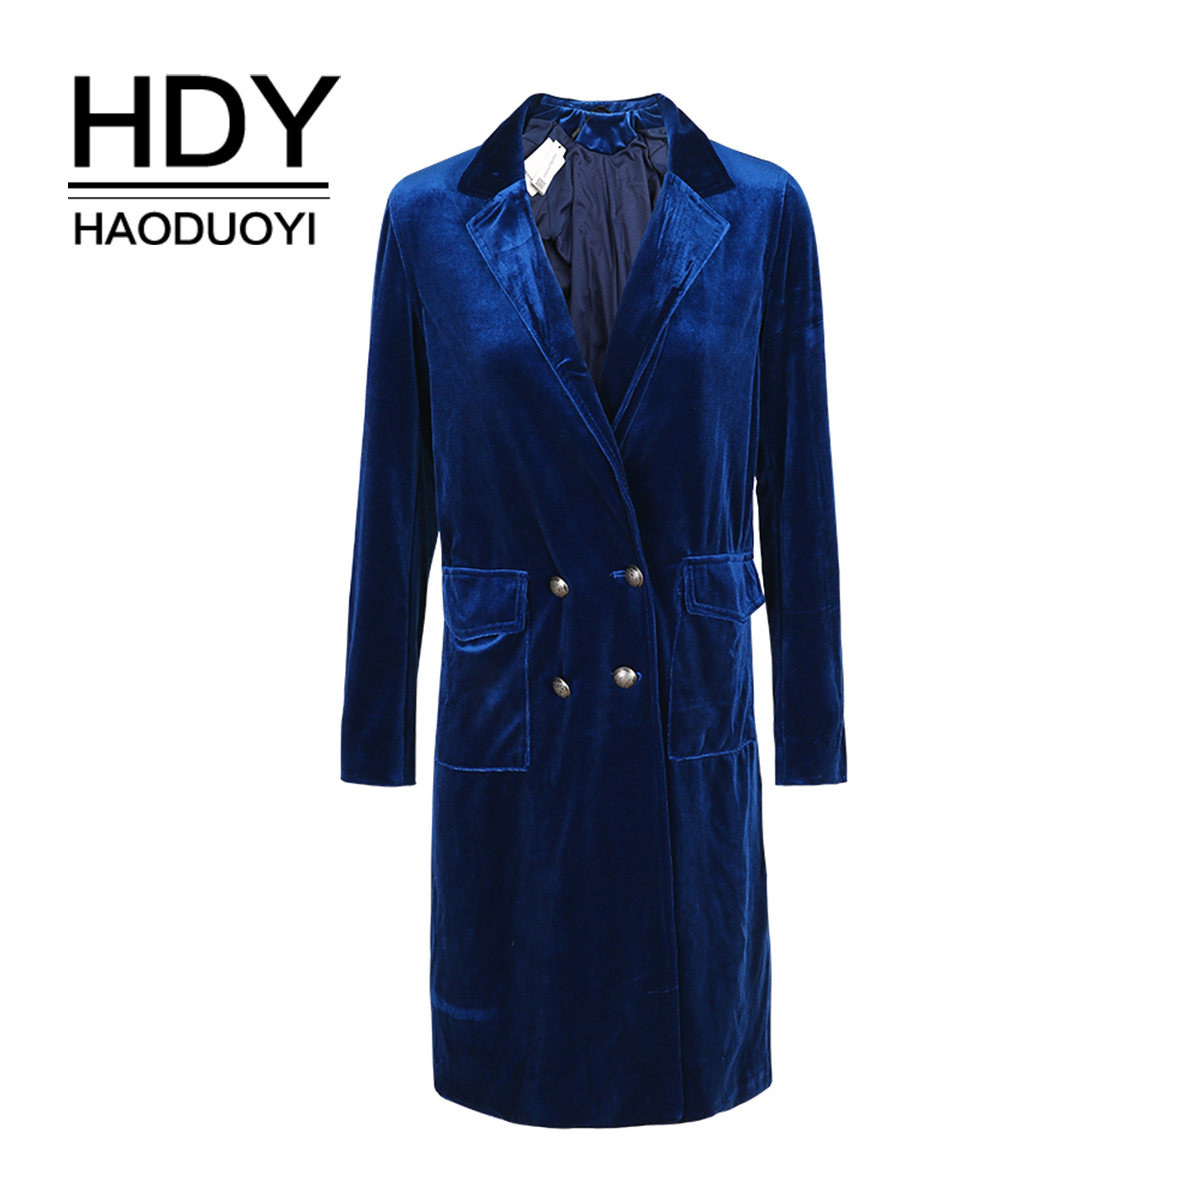 HDY Haoduoyi Vintage Elegant Women Coat Double Breasted Slim Trench Coat Spring Casual Lady Loose Velvet Female Outwears